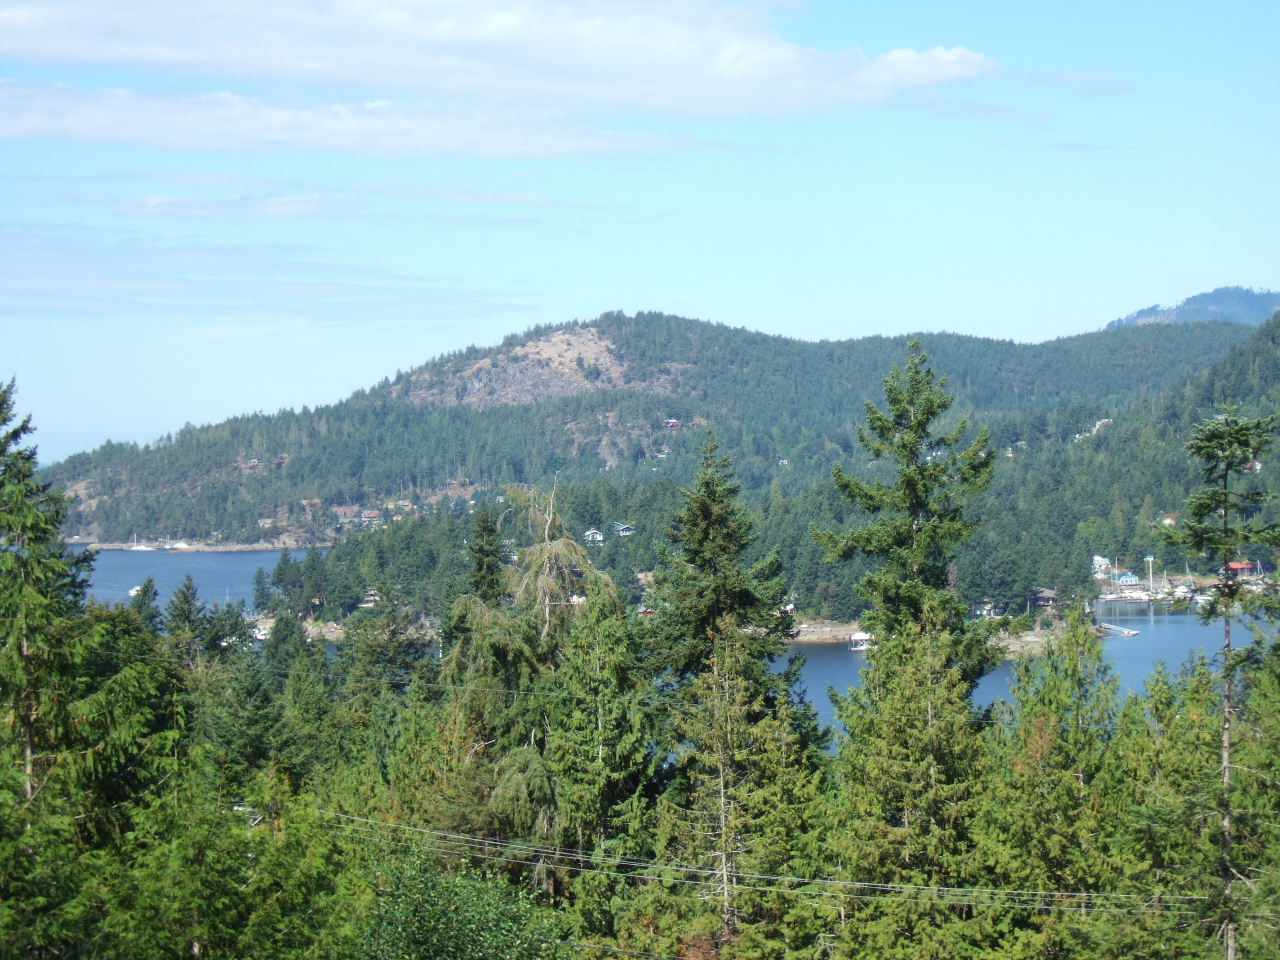 "Residential Building Lot is partially prepped with building site & driveway. Freehold Title (no strata fees or rules!) and this lot permits a ""Modular Home"", with some size restrictions. Paved road access & seasonal view into Gunboat Bay area of Pender Harbour. Excellent value within a short walk to all village amenities including moorage & public boat ramp. Excellent choice of recreation activities nearby! GST applies to Purchase Price."